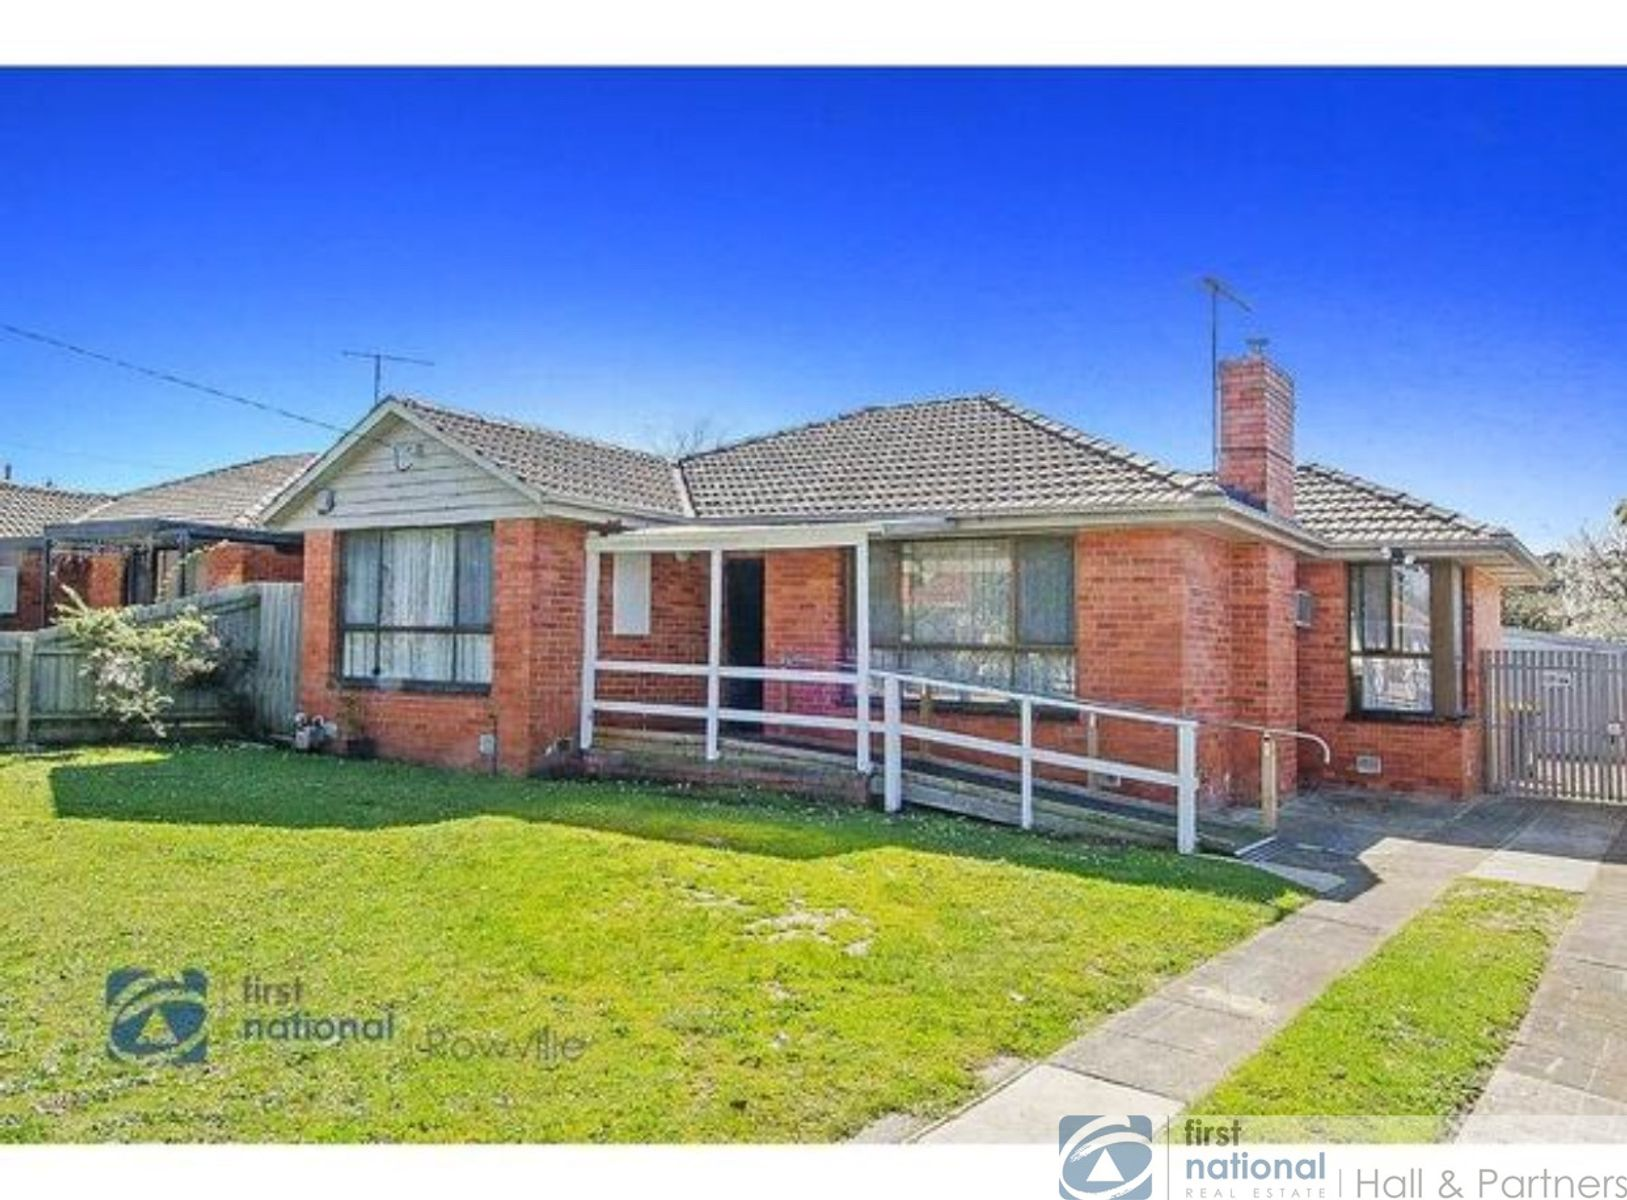 7 Waratah Drive, Dandenong North, VIC 3175